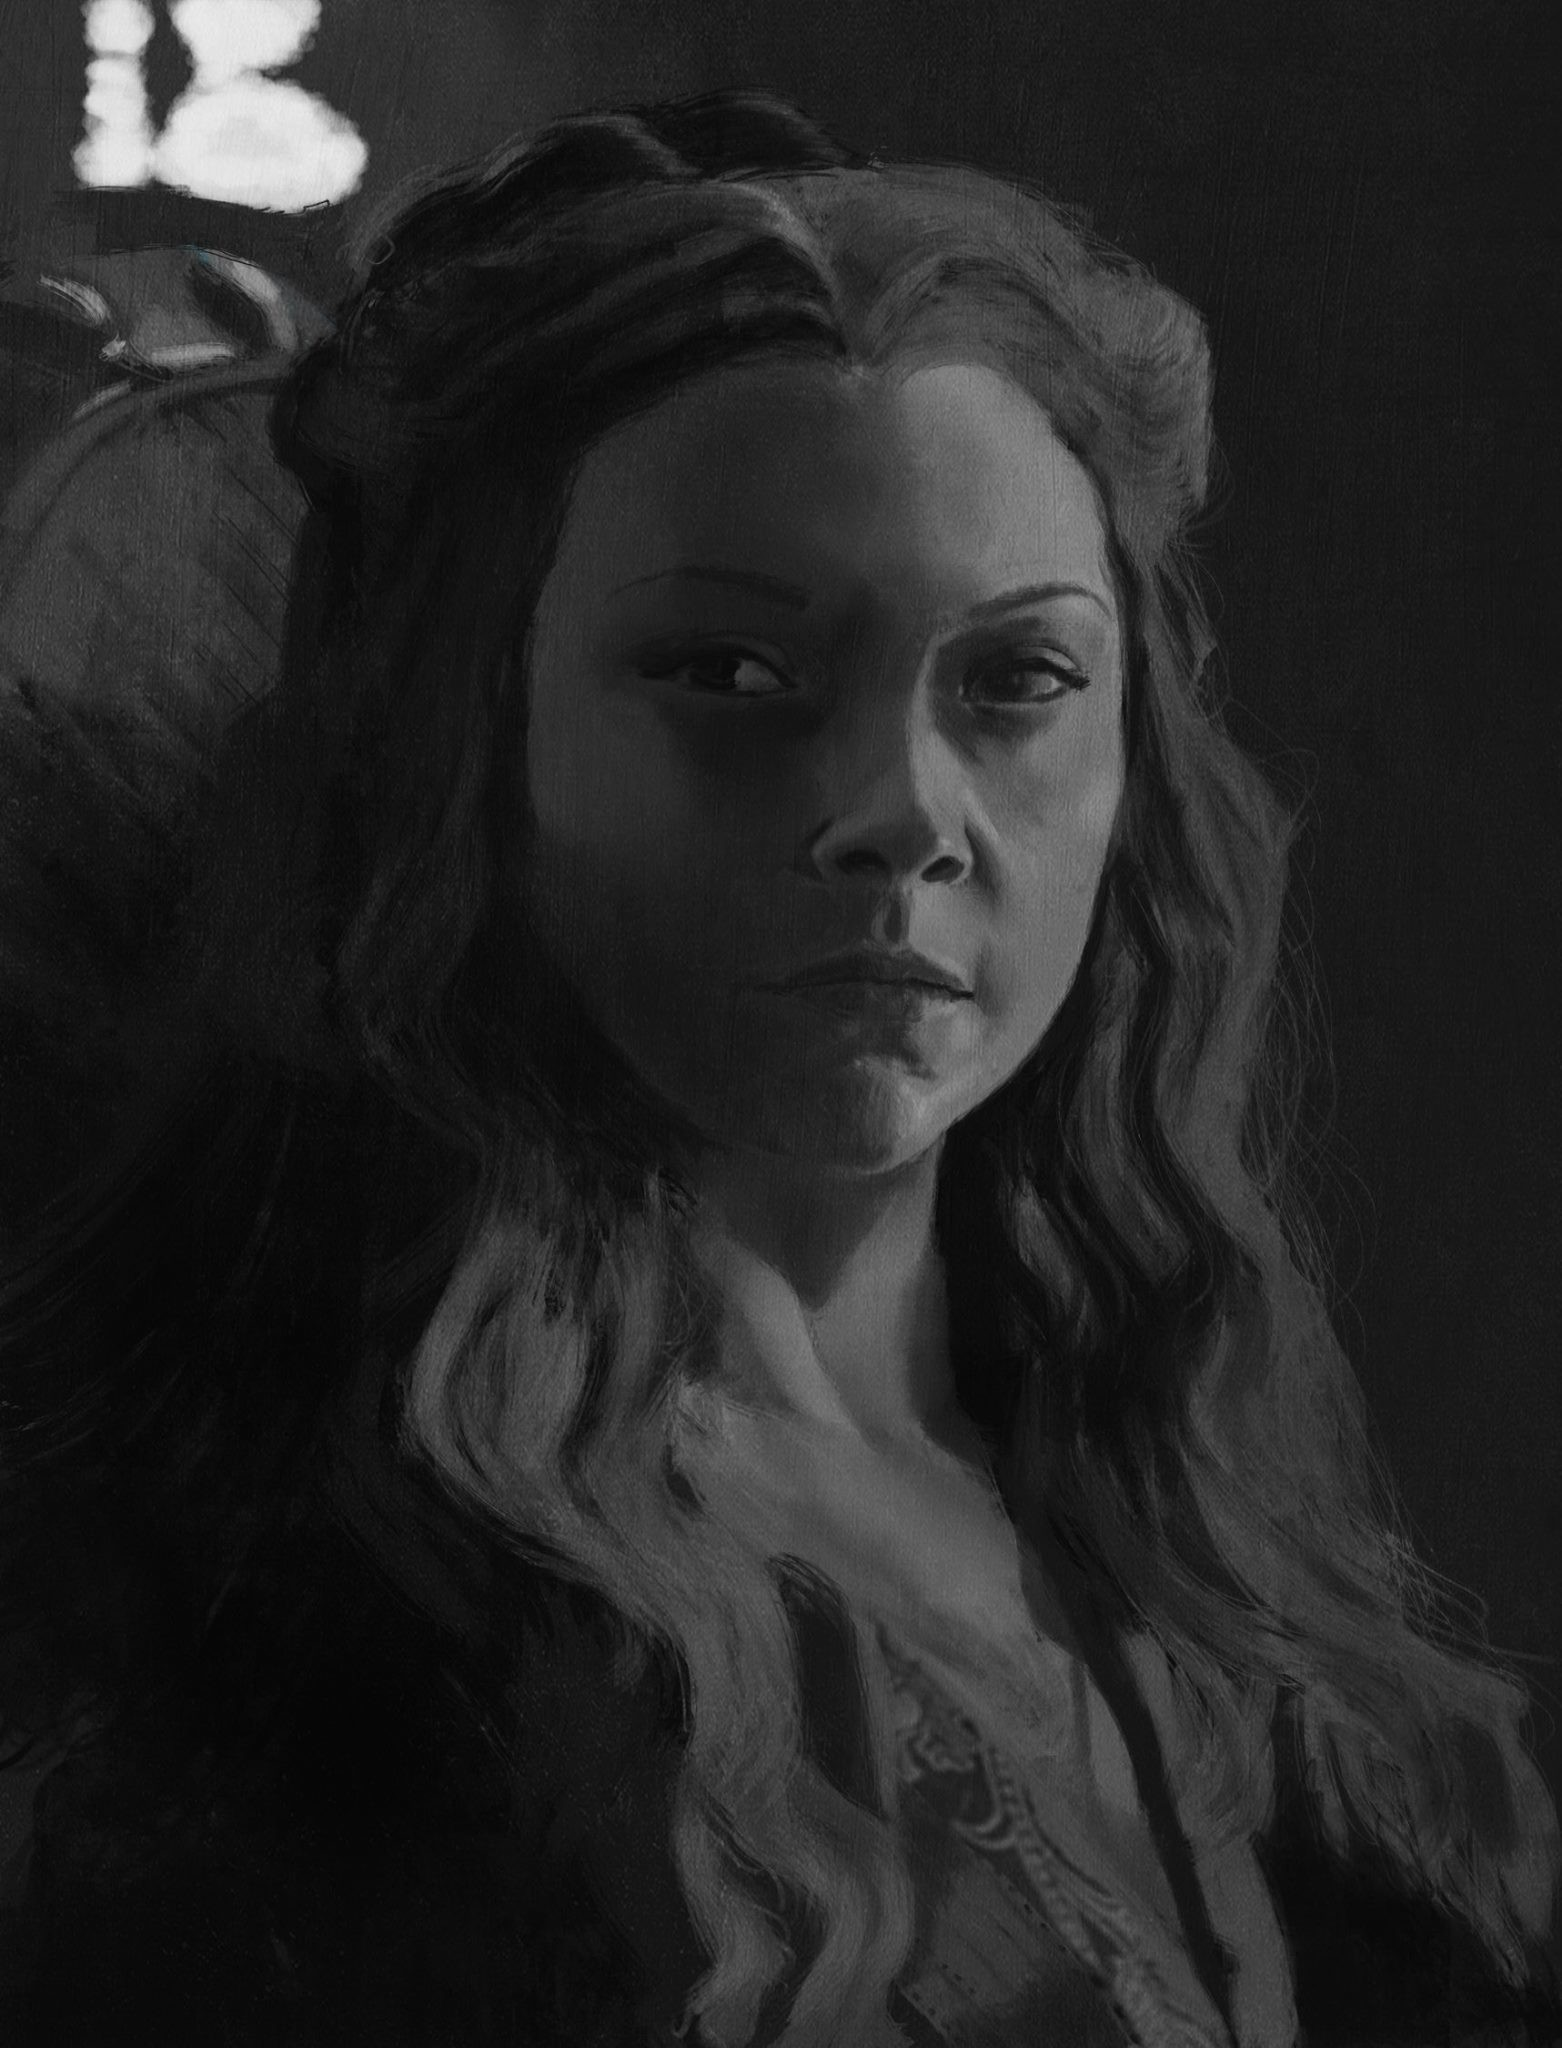 Game of Thrones Margaery Tyrell Sketch